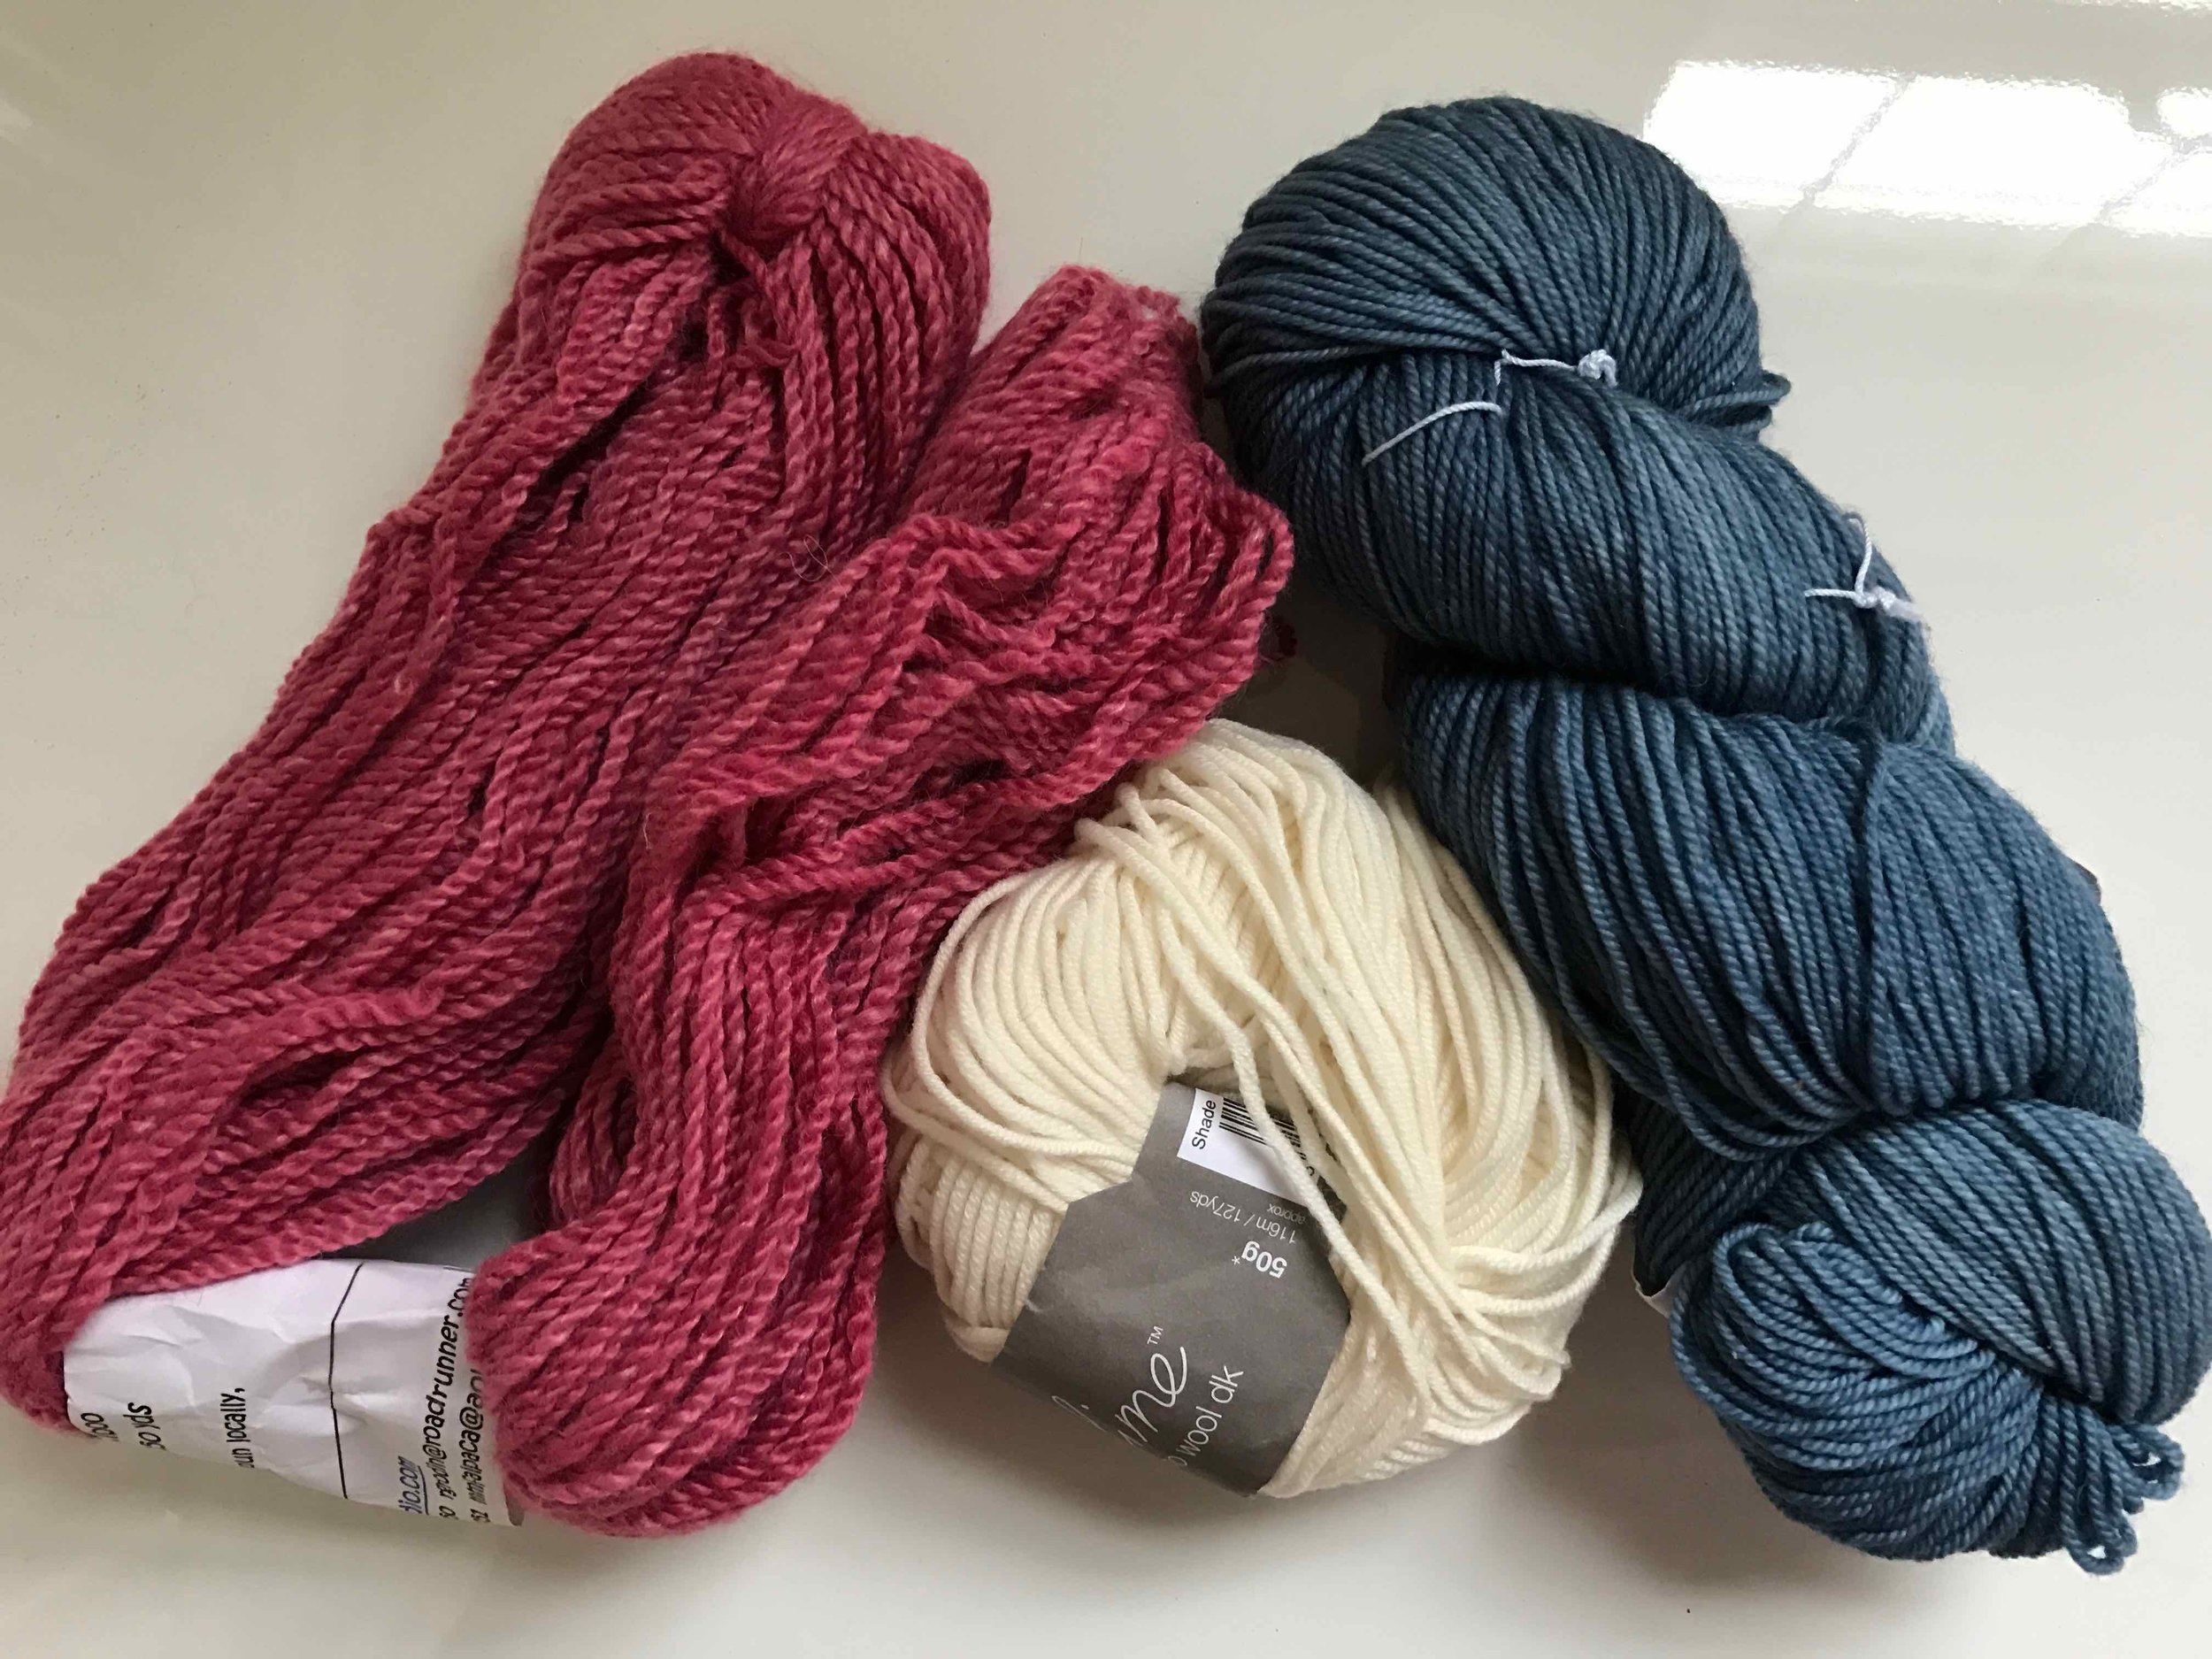 A combination of Sublime extra fine merino wool dk with either madelinetosh tosh sport or Alpaca fibre studio baby alpaca yarn with 20% bamboo